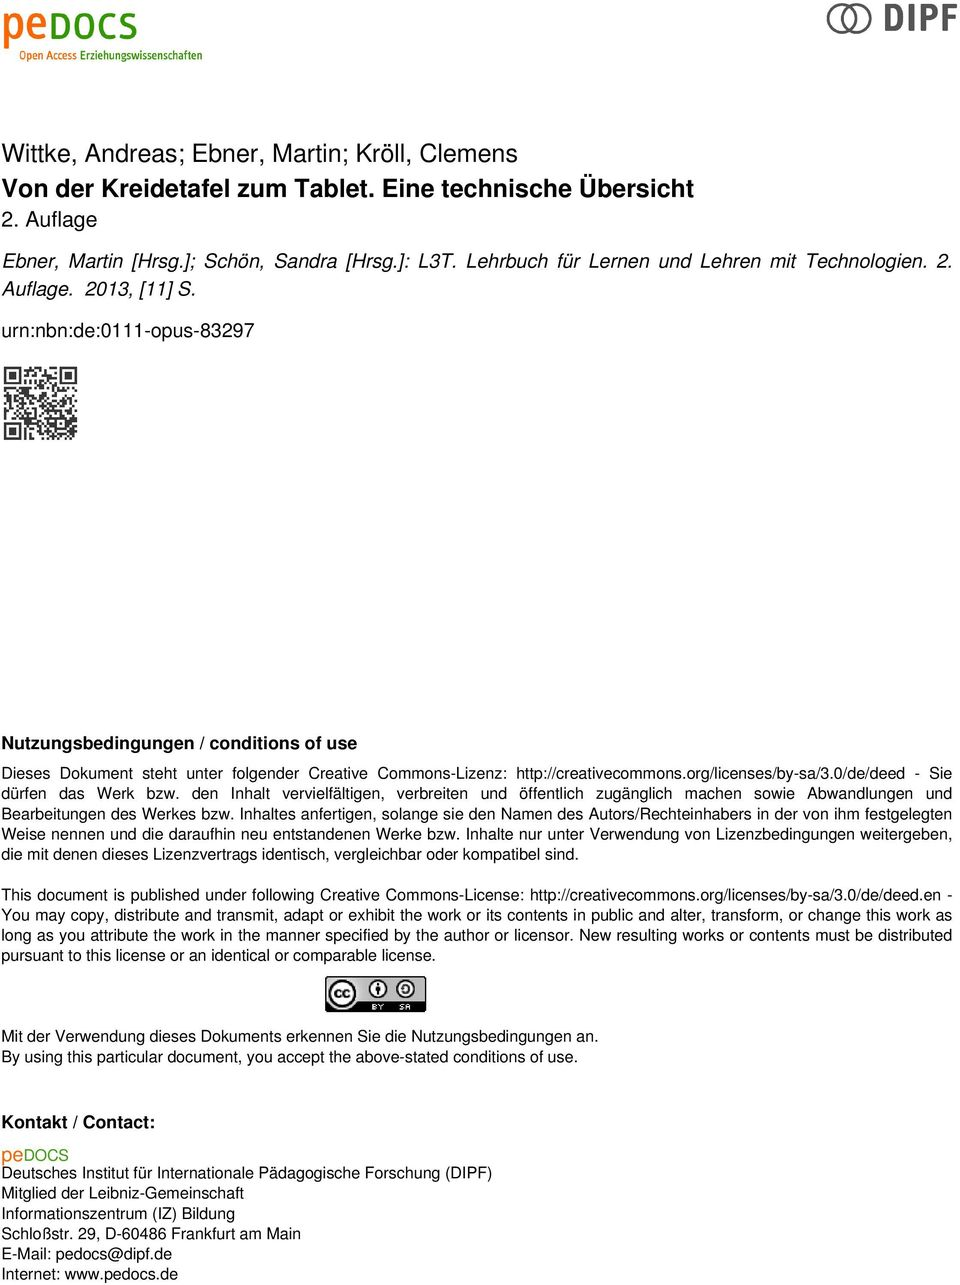 urn:nbn:de:0111-opus-83297 Nutzungsbedingungen / conditions of use Dieses Dokument steht unter folgender Creative Commons-Lizenz: http://creativecommons.org/licenses/by-sa/3.